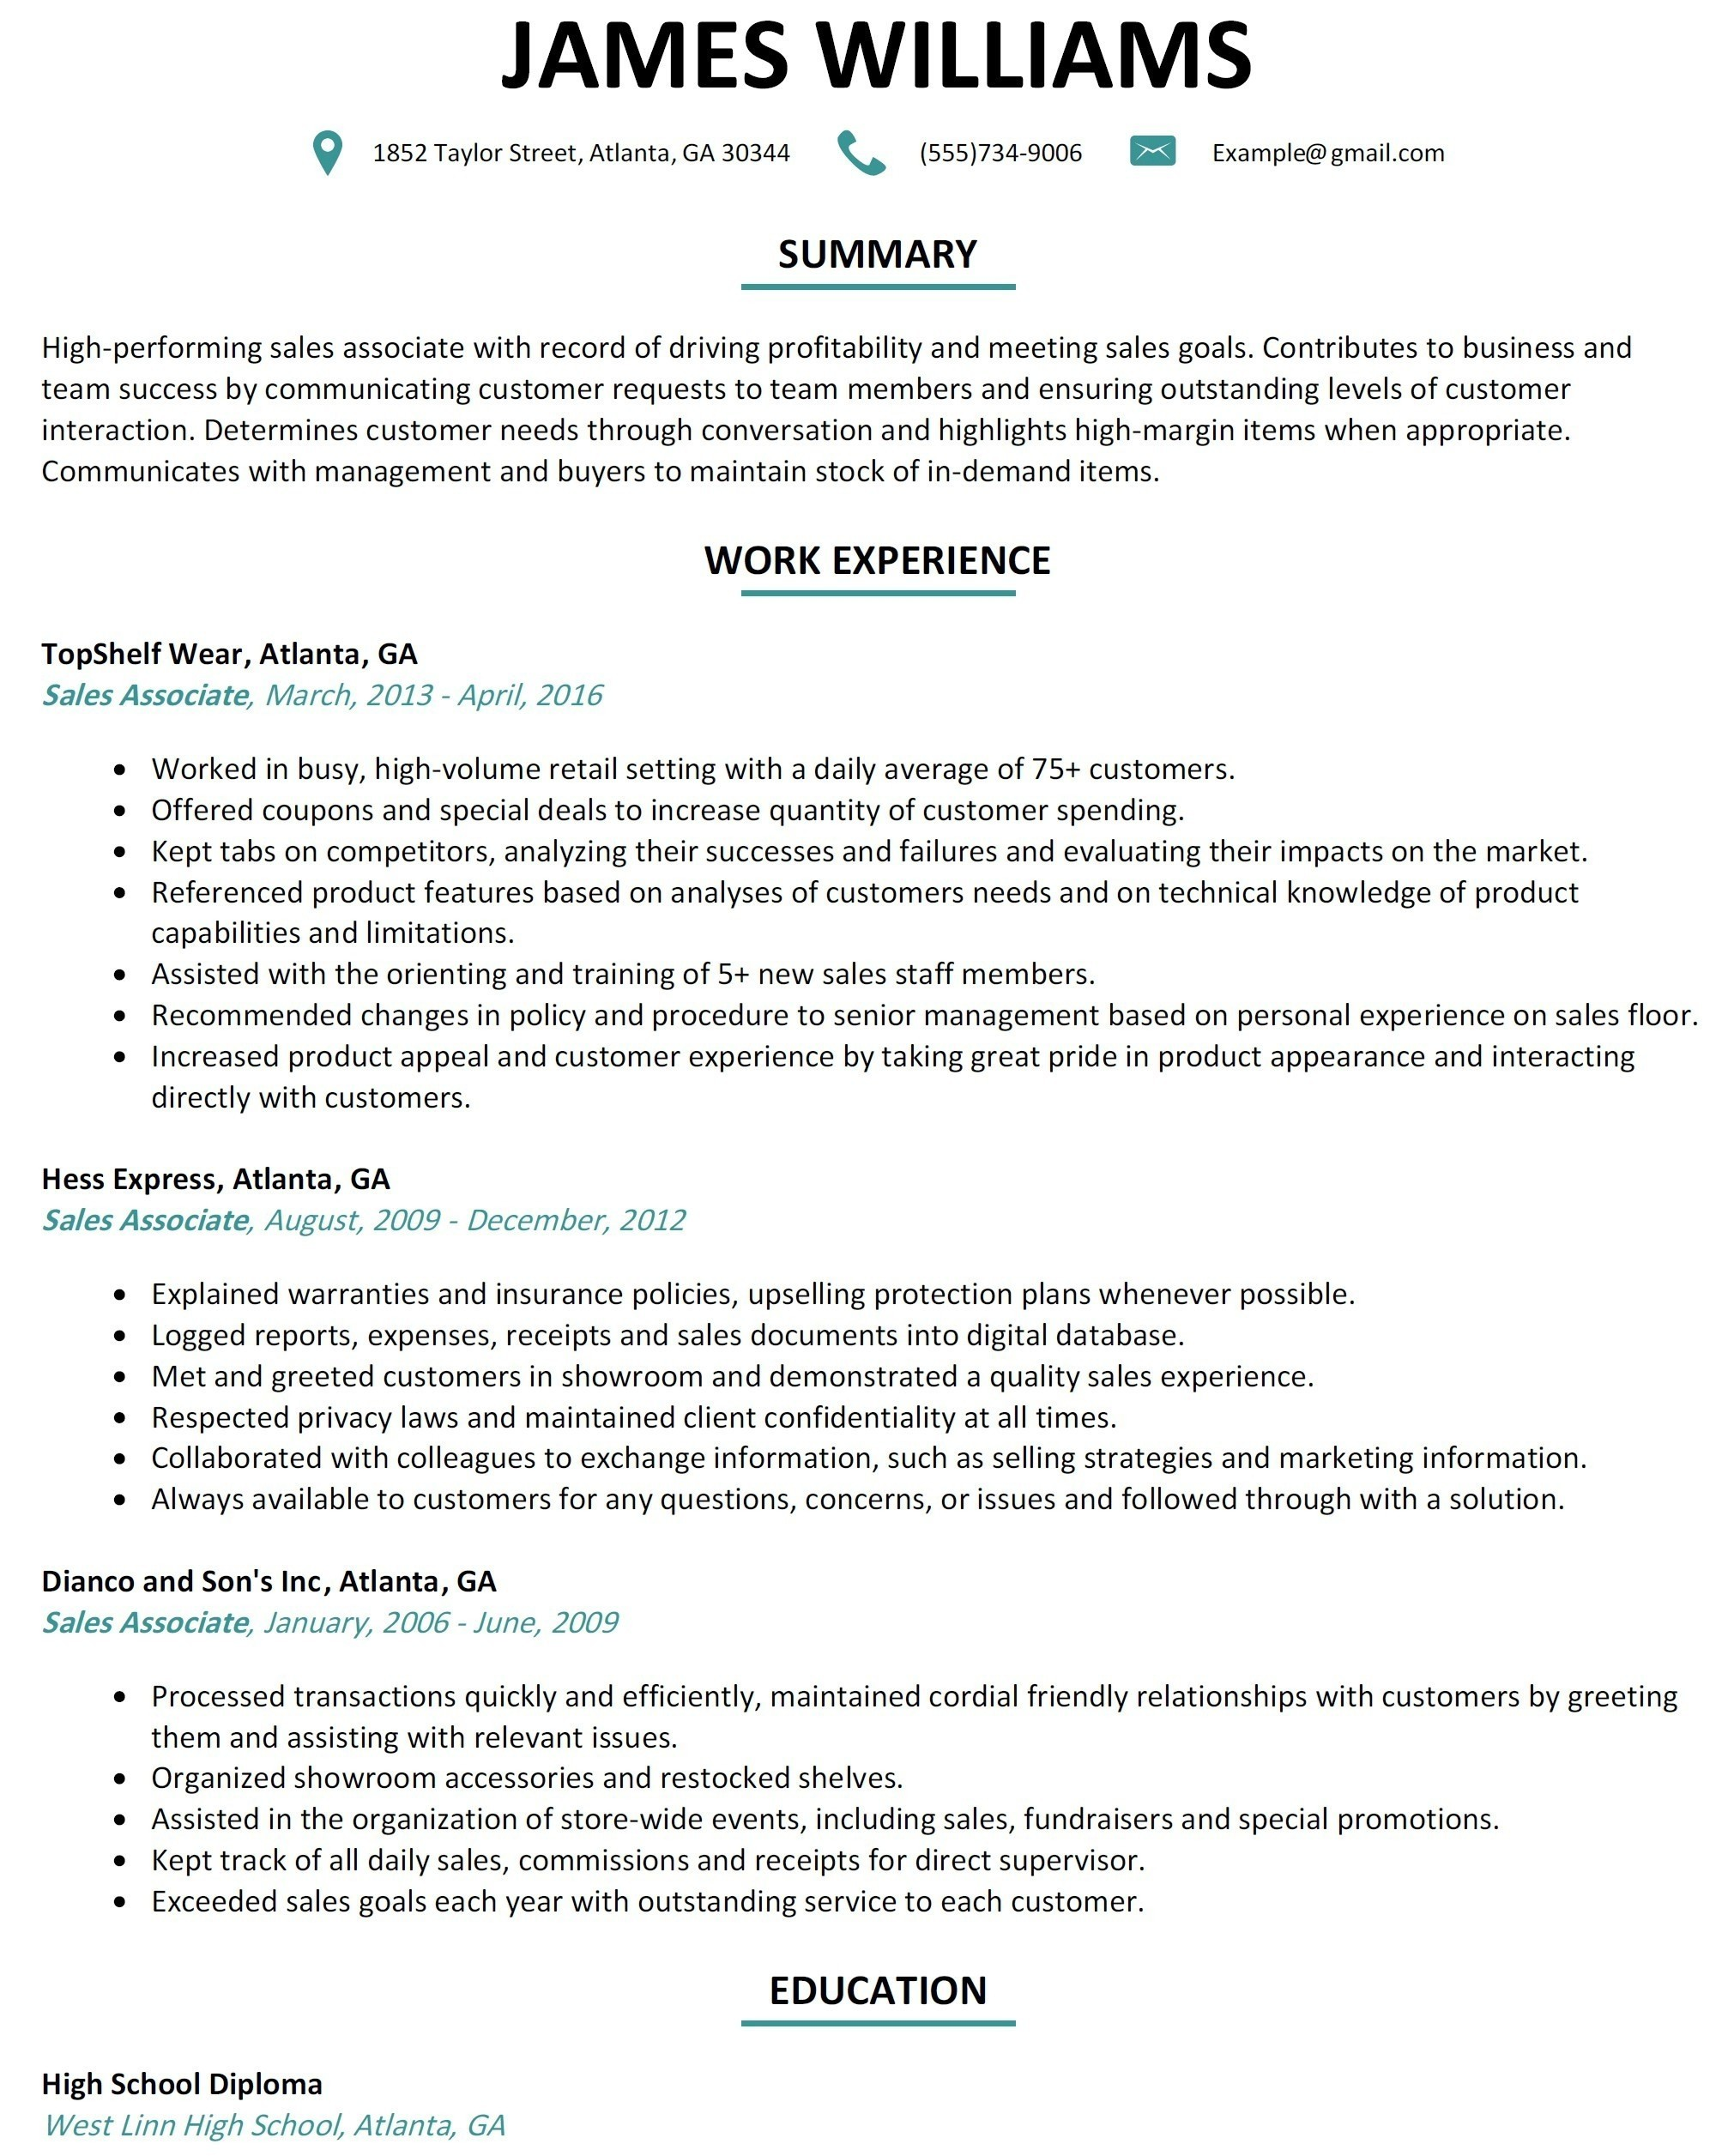 Medical Scribe Resume Examples For Tyneandweartravel.info